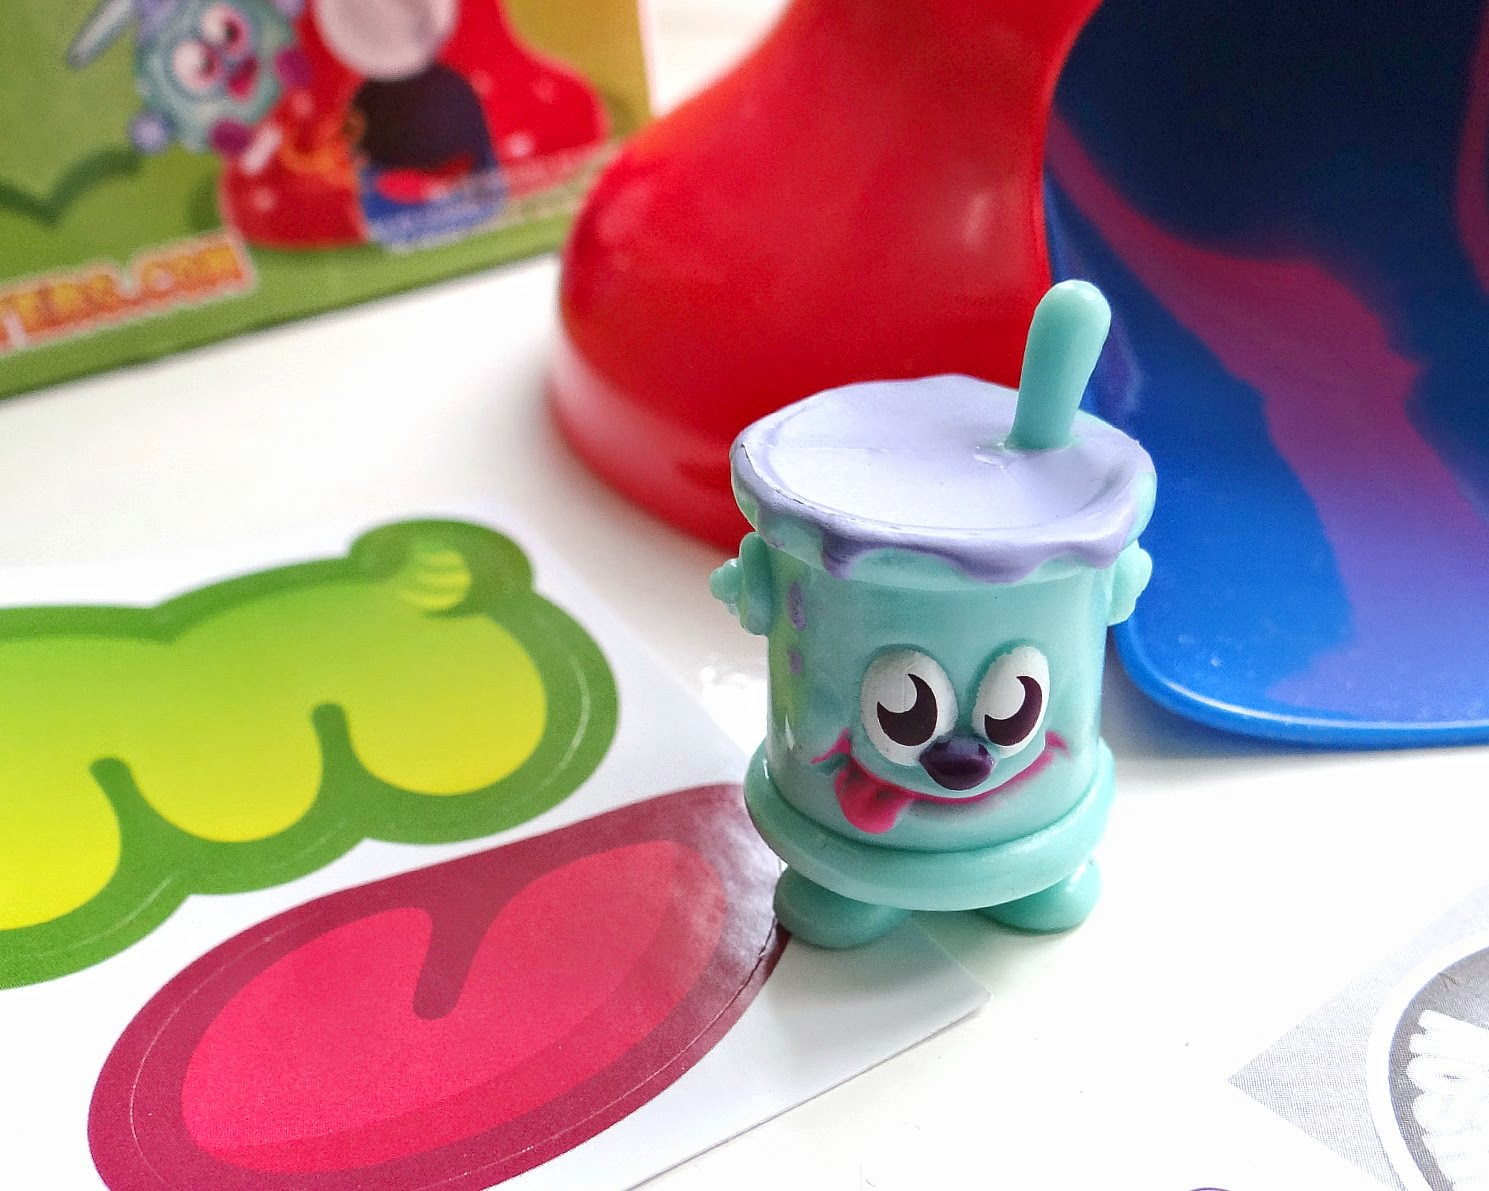 Moshi Monsters Gumball Machine, Moshi Monsters Figures Storage, Moshi monsters merchandise